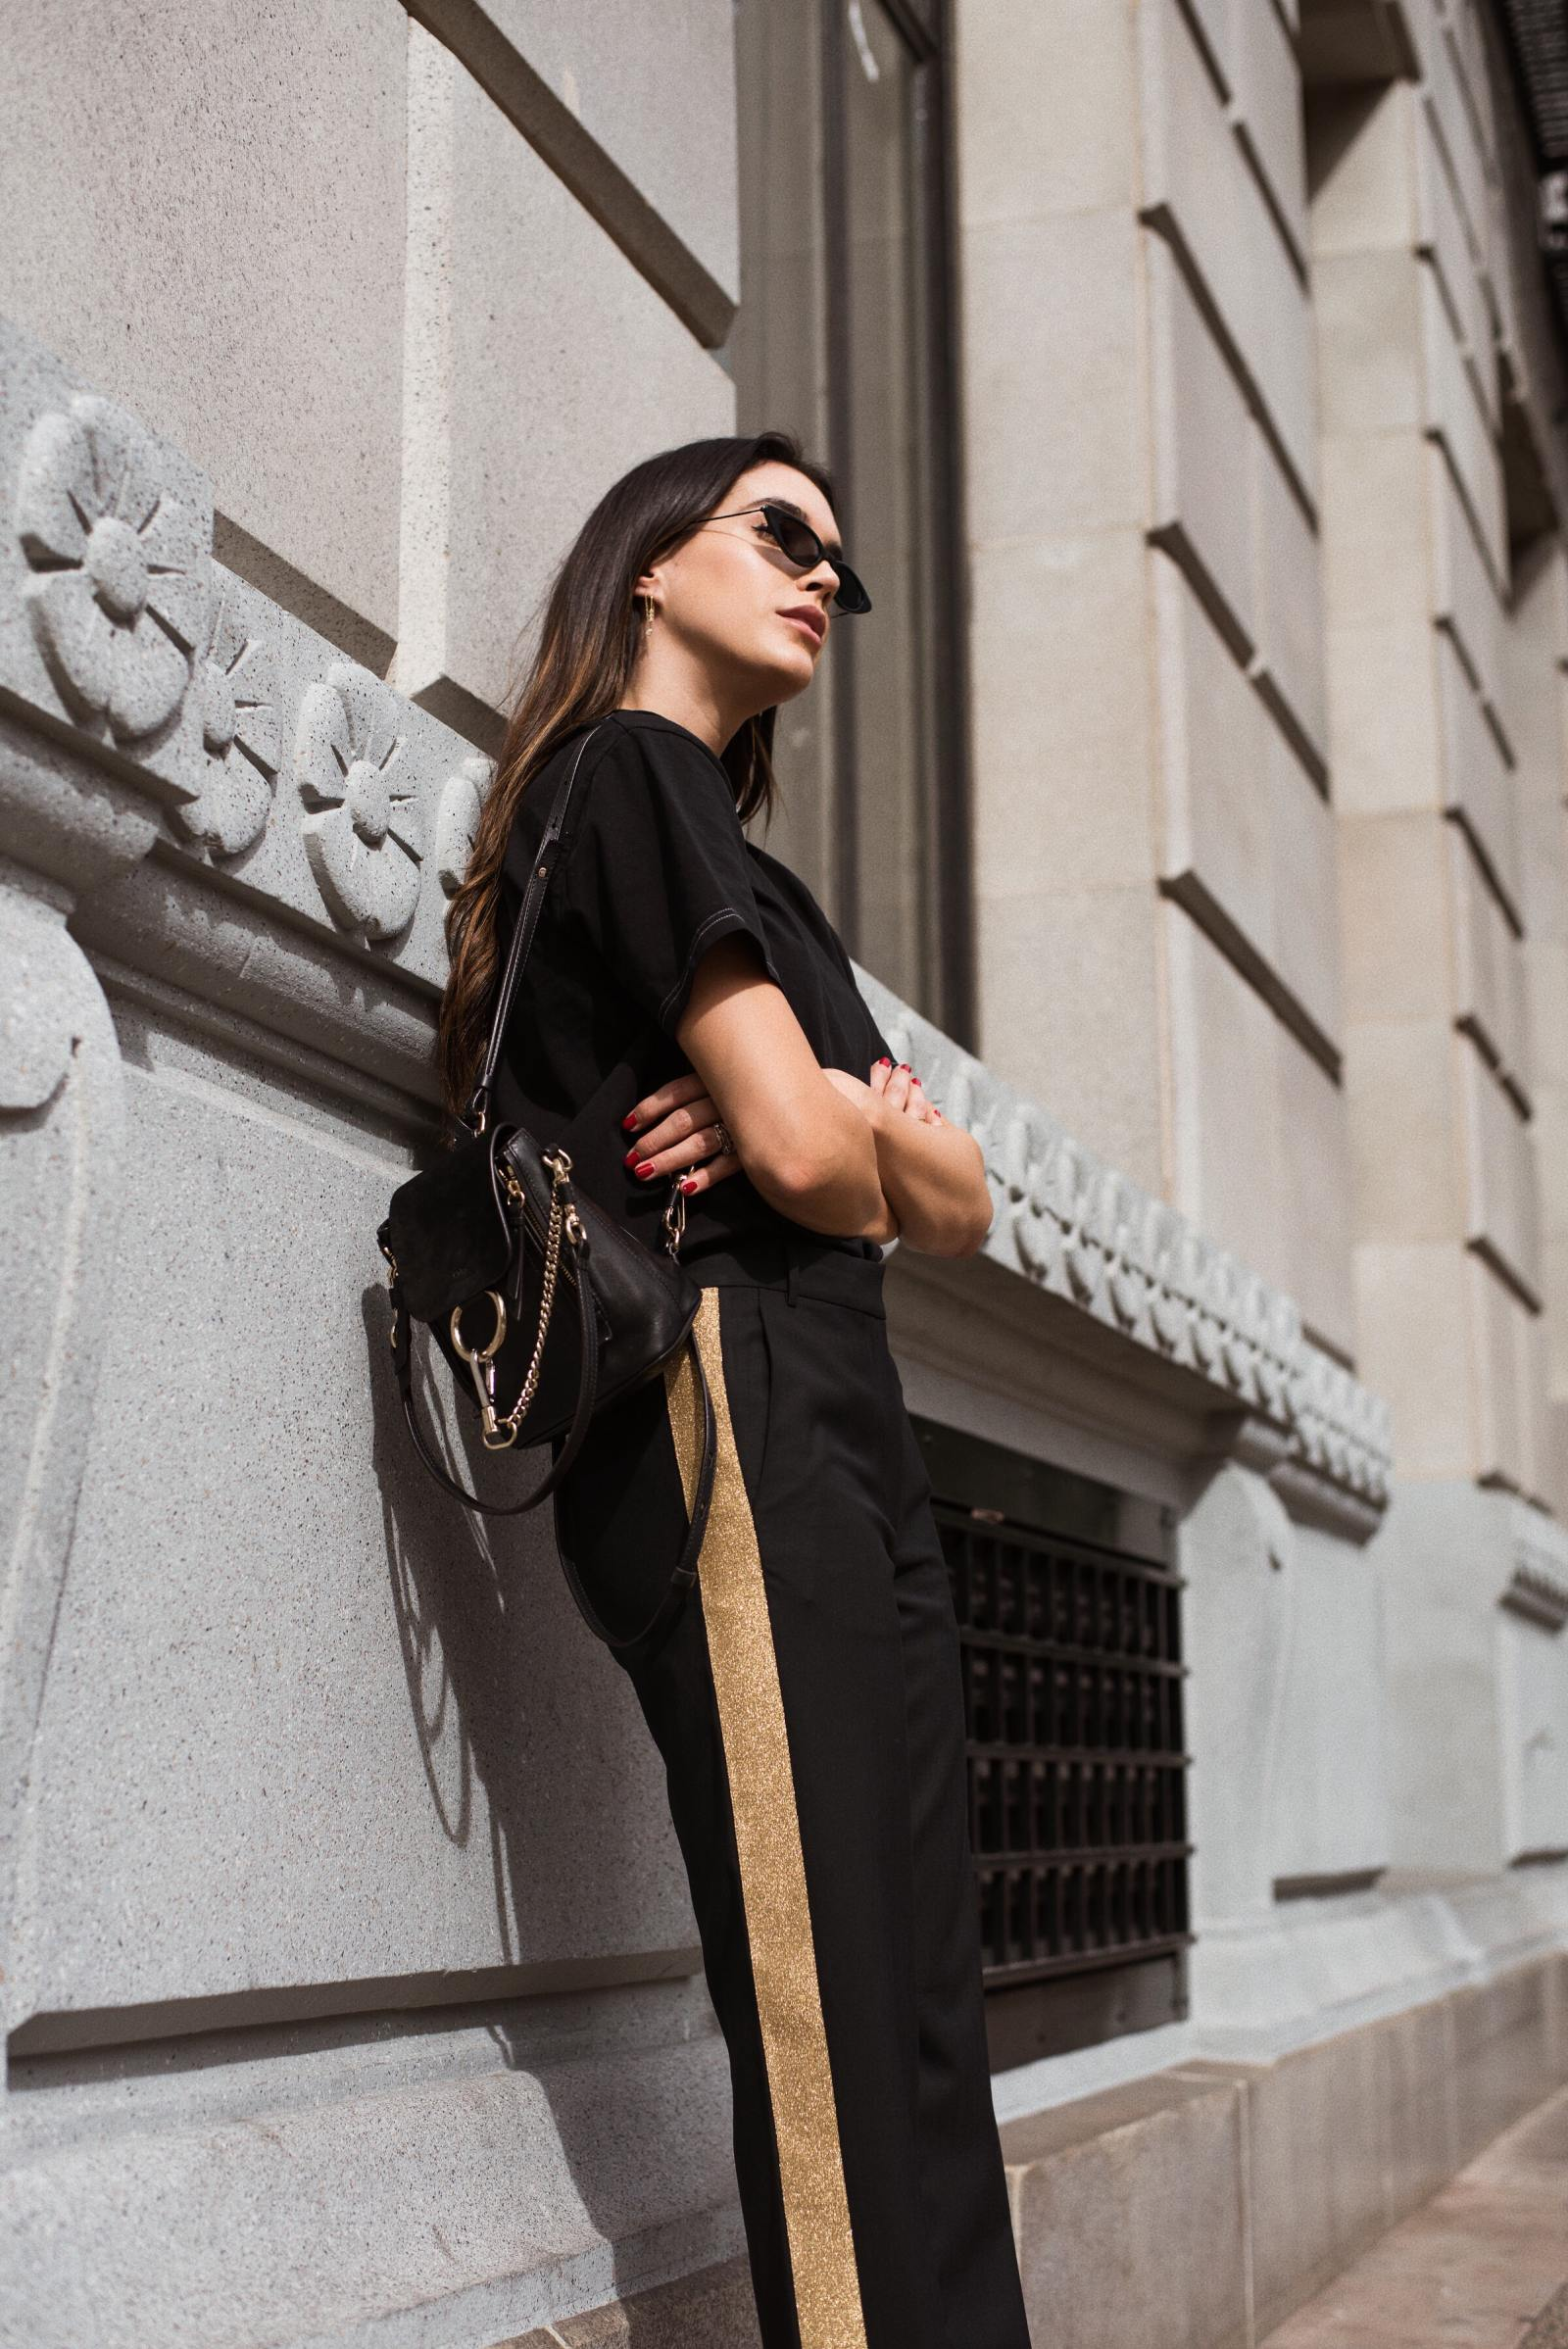 Why You Can Never Go Wrong with All Black